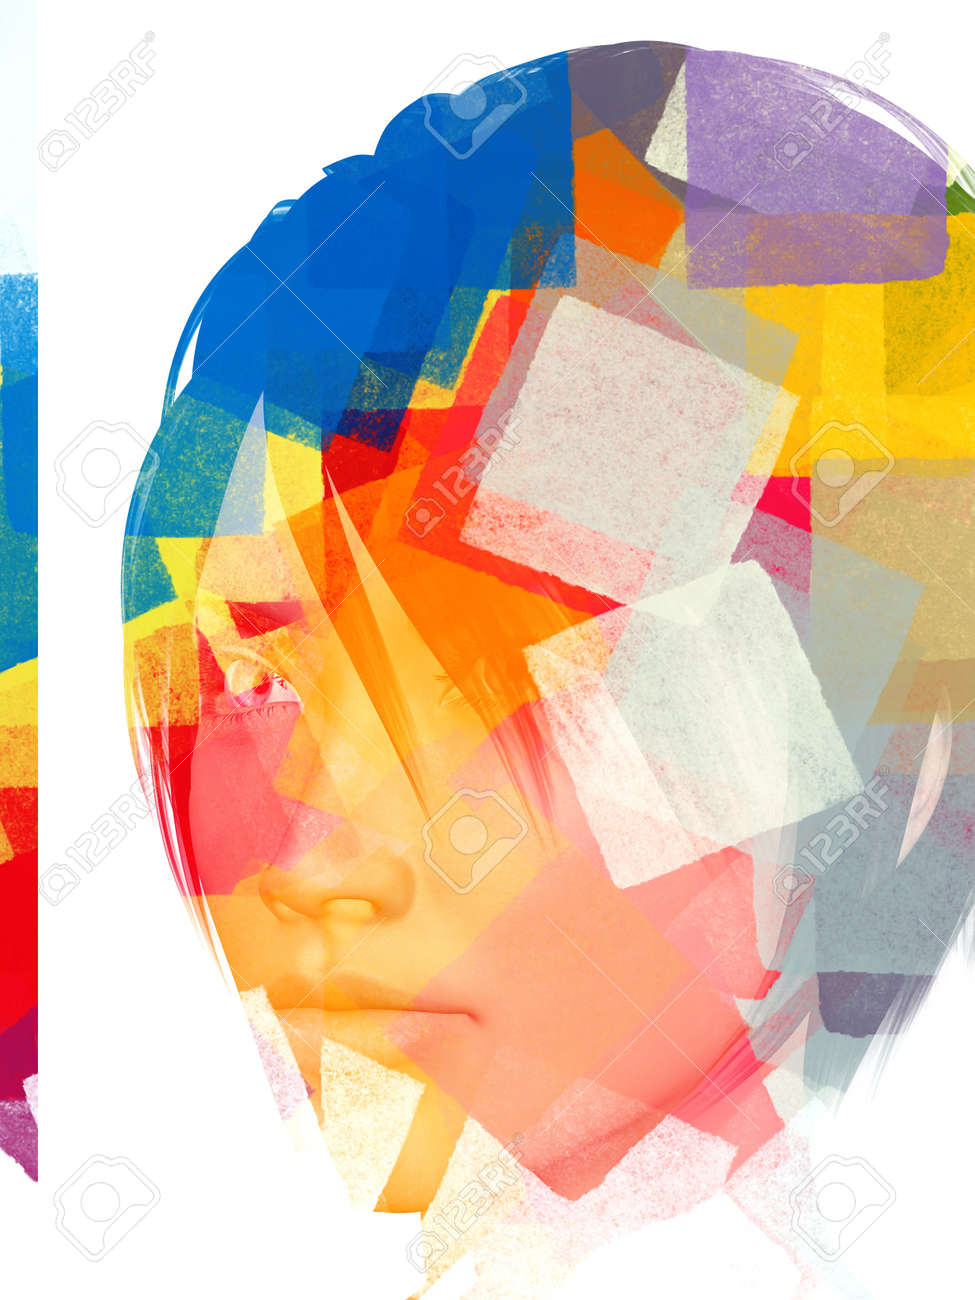 Female portrait and abstract geometric pattern. 3d illustration. Stock Photo - 10486835